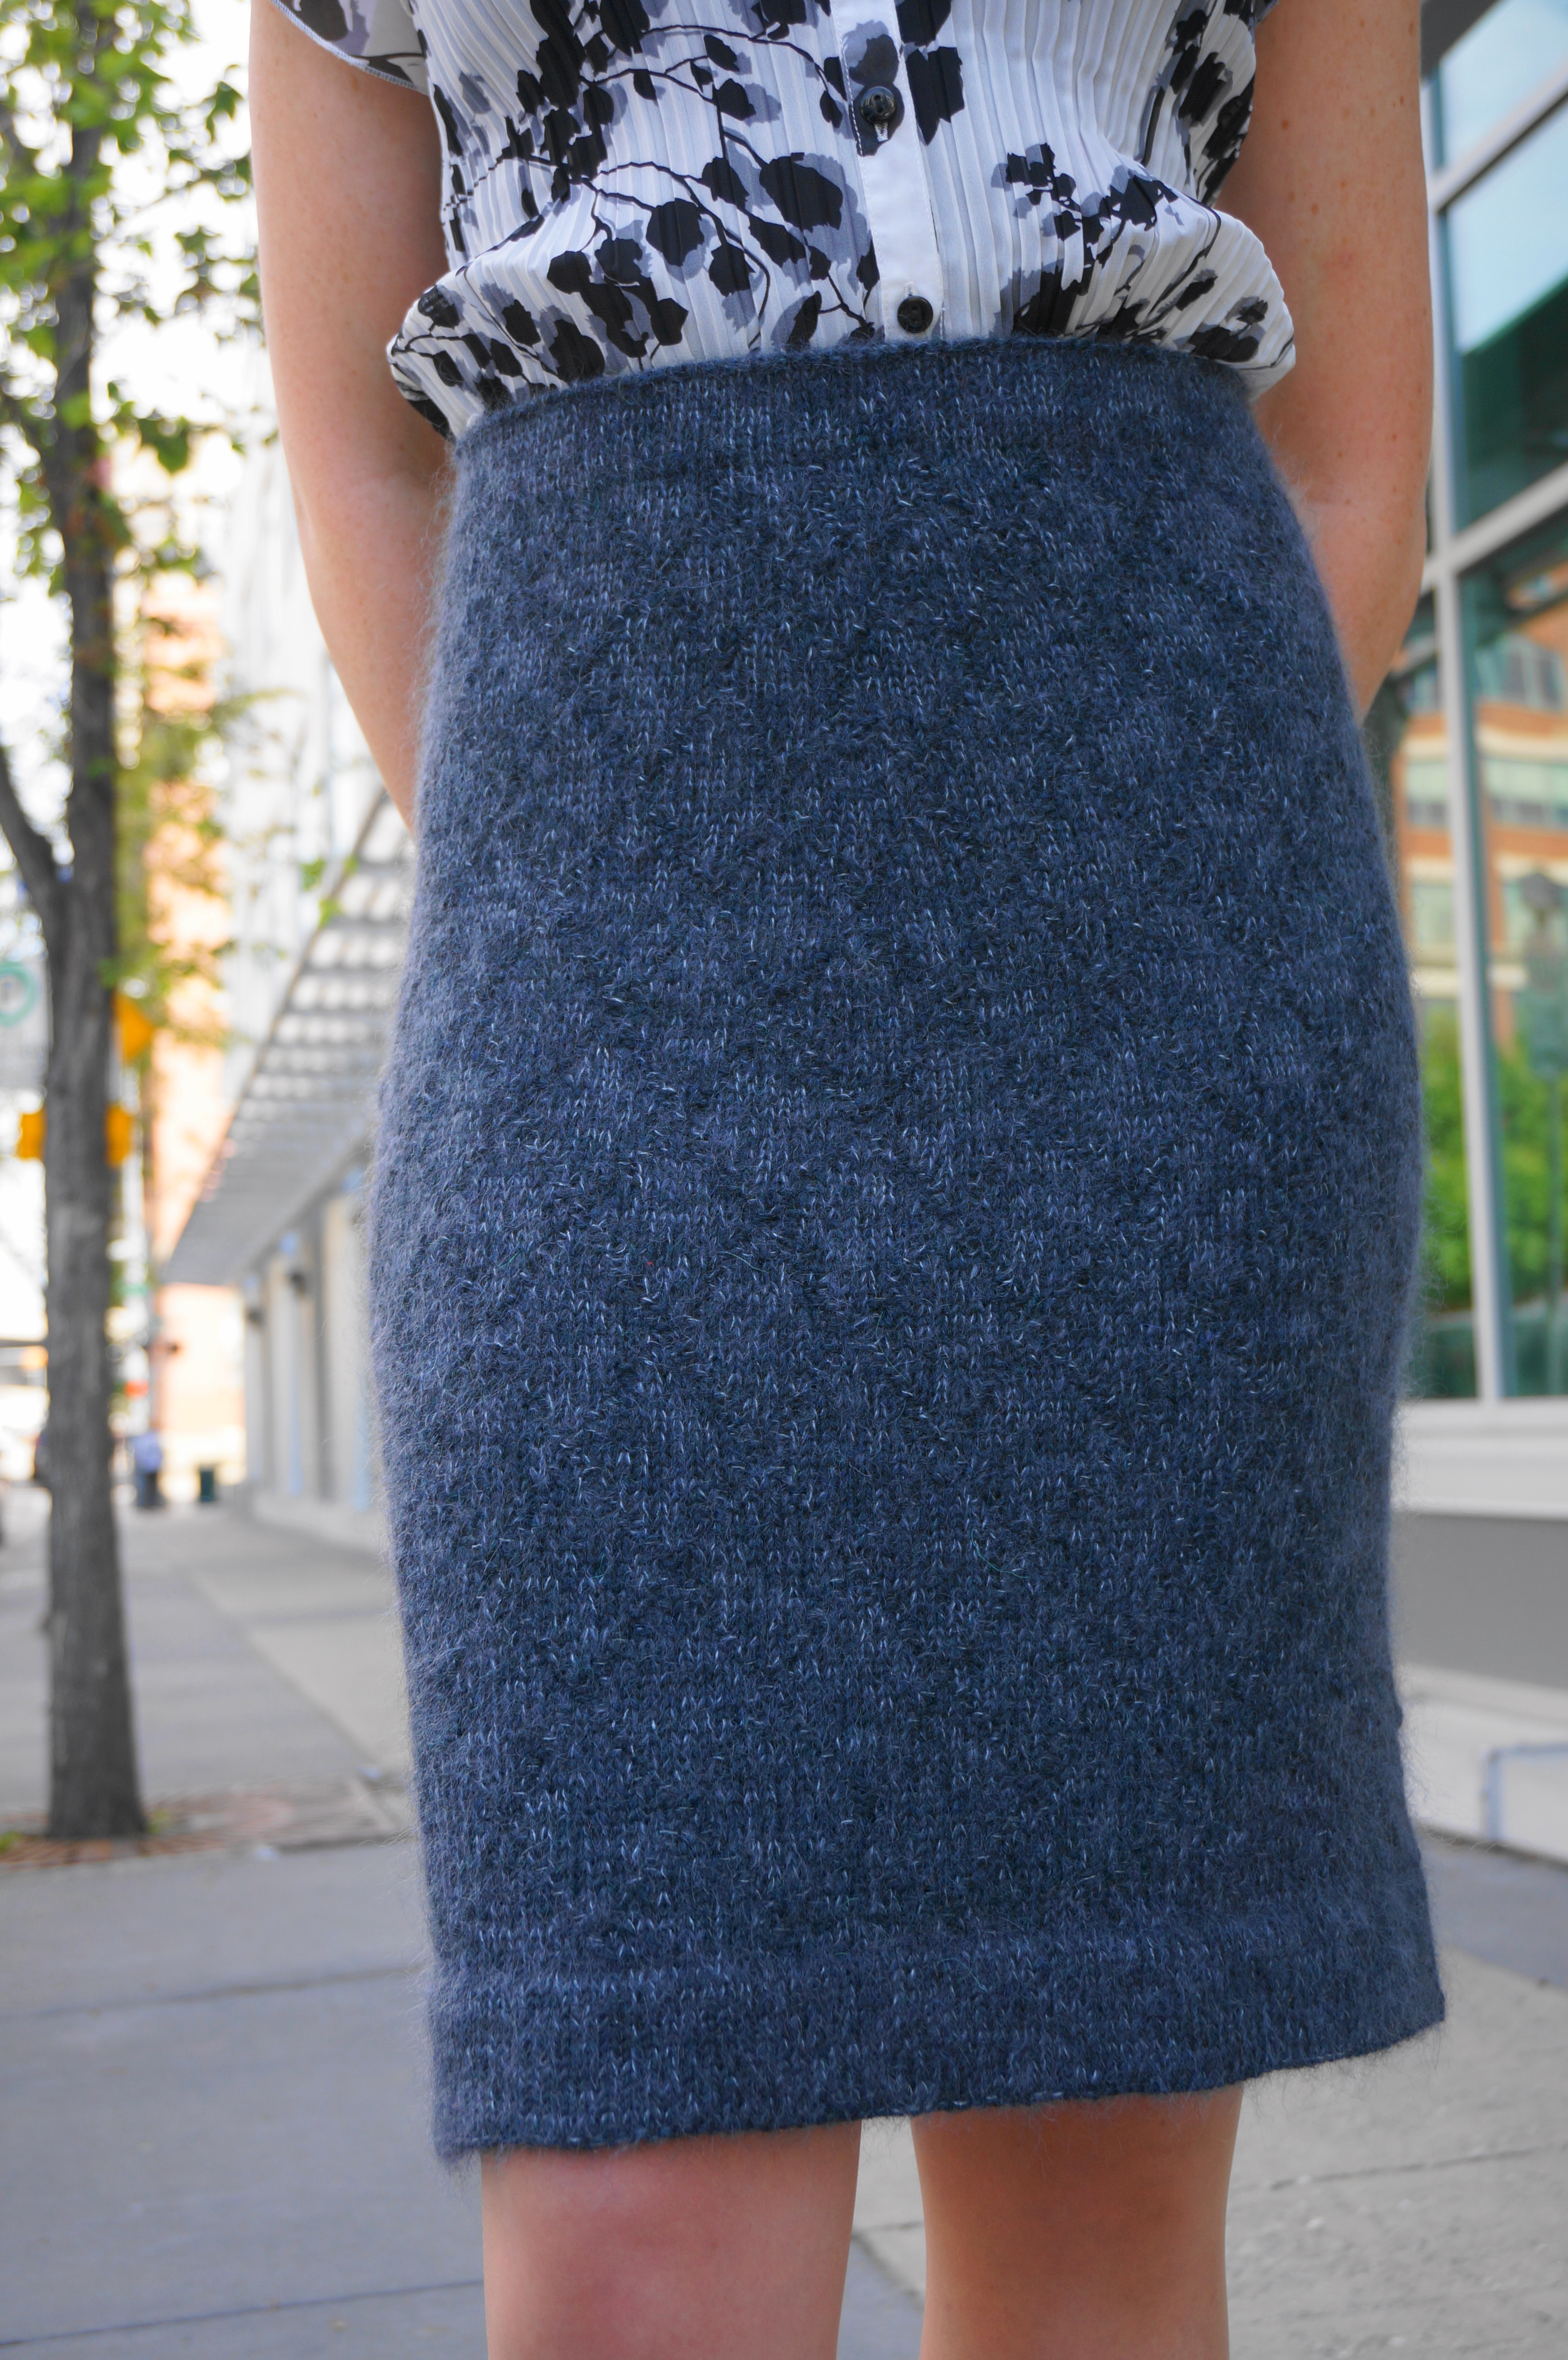 Free Crochet Patterns For Long Skirts : The Helen Pencil Skirt cowtownknits